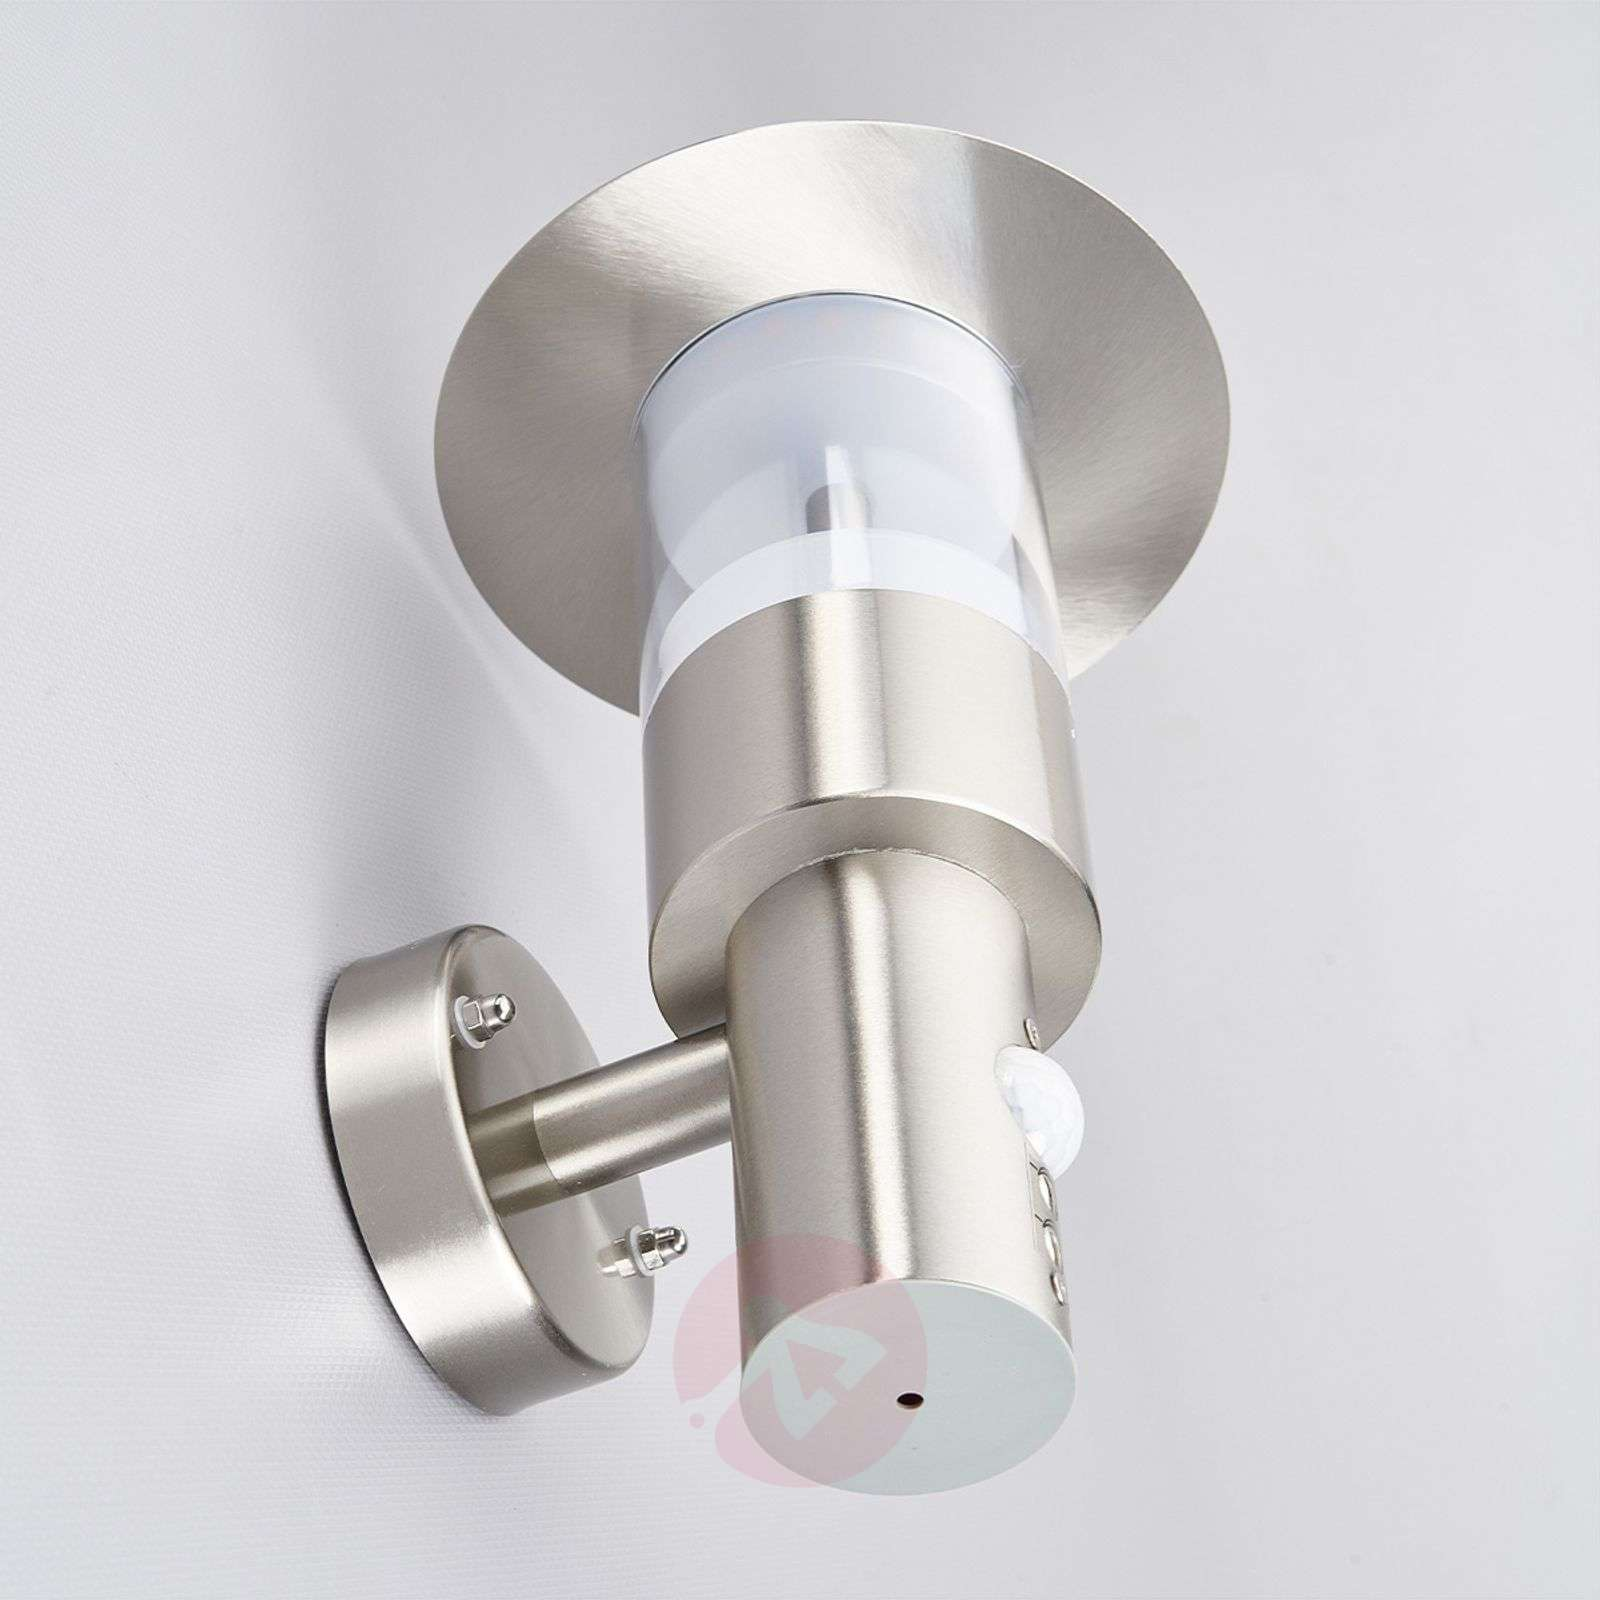 ... LED Presence Detector Outdoor Wall Light Anouk 9988030 01 ...